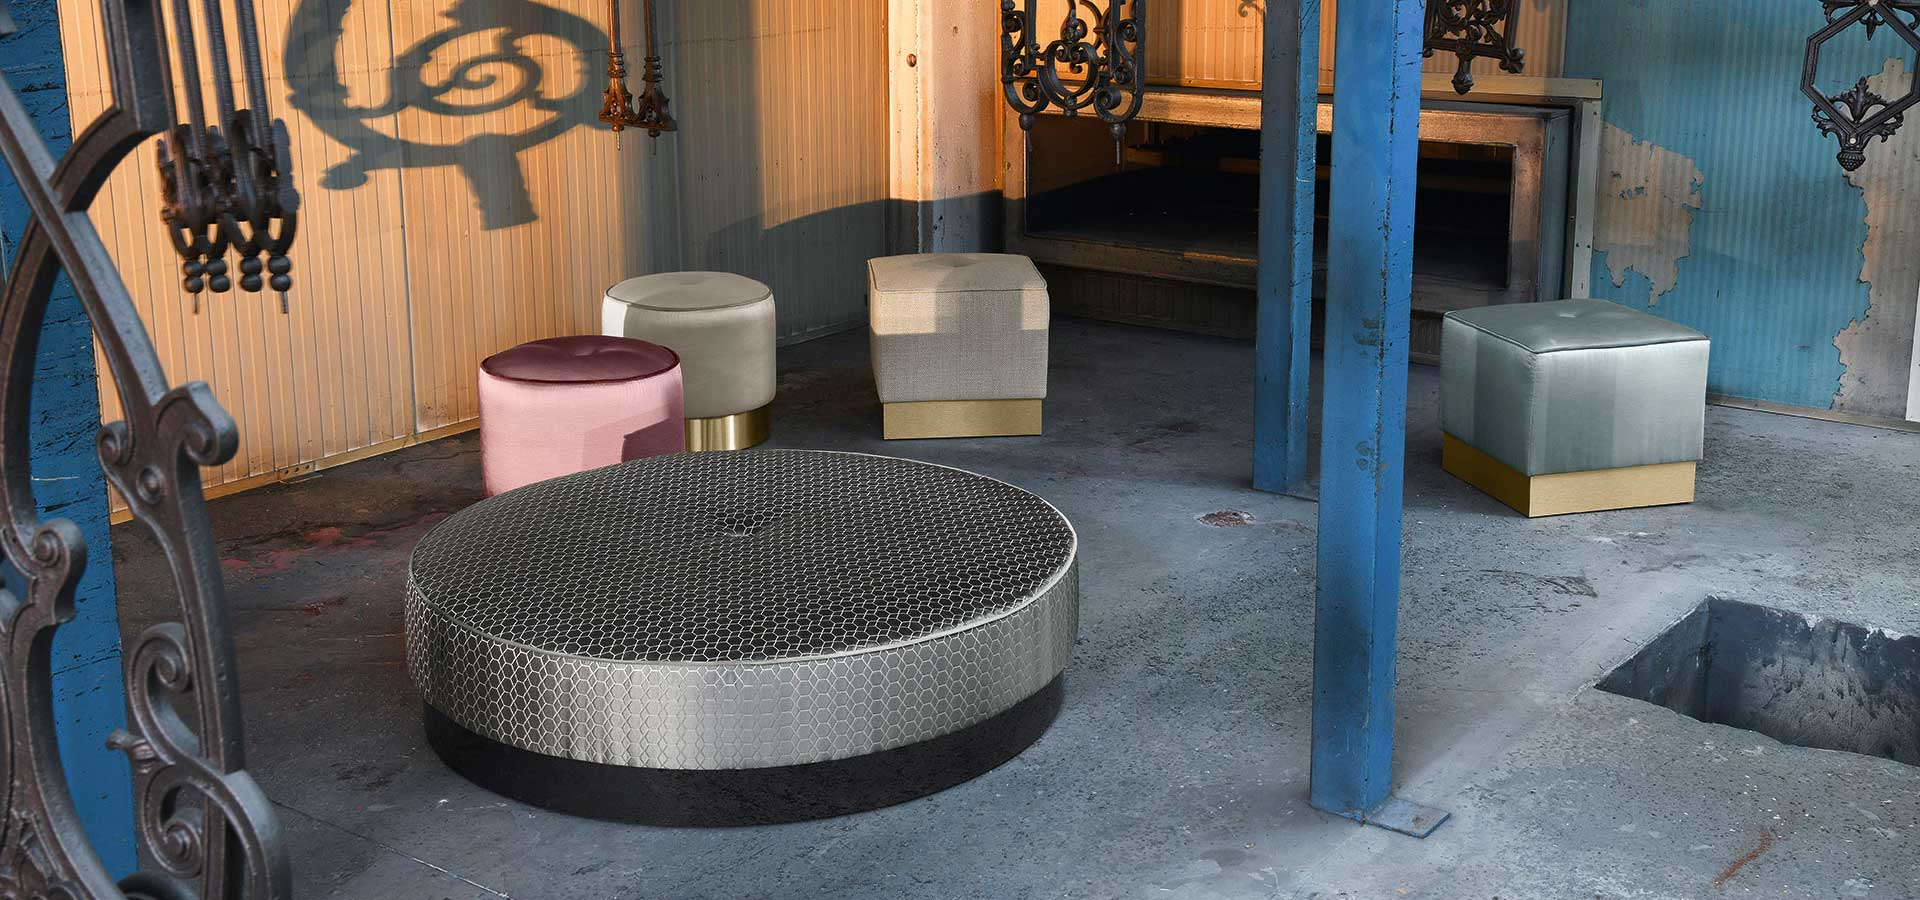 Contract_CollezioneDesignItalianoCollectionitalianDesign_POUF-EOS-AMB_1139